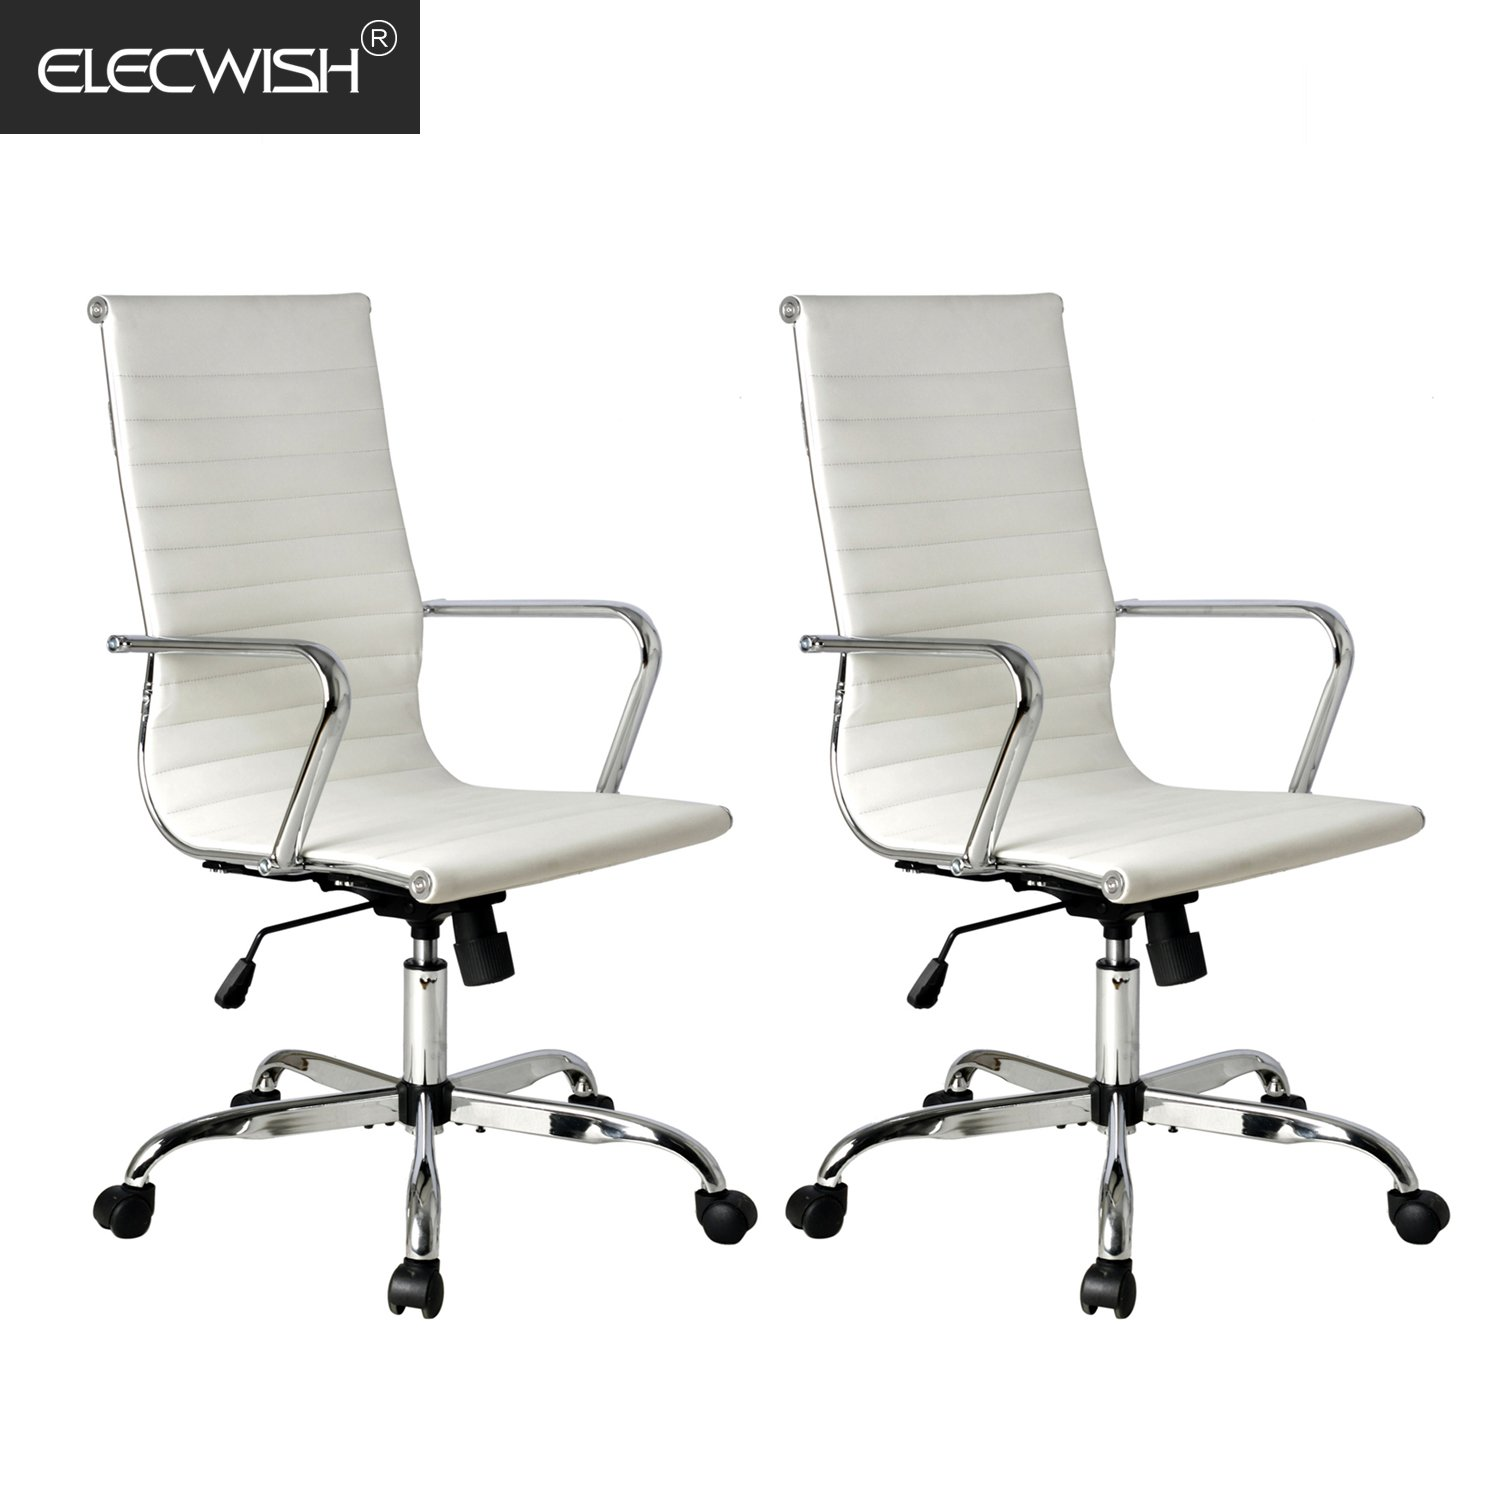 Elecwish 2pcs adjustable office executive chair high back tall ribbed pu leather wheels arm rest computer chrome base home furniture conference room